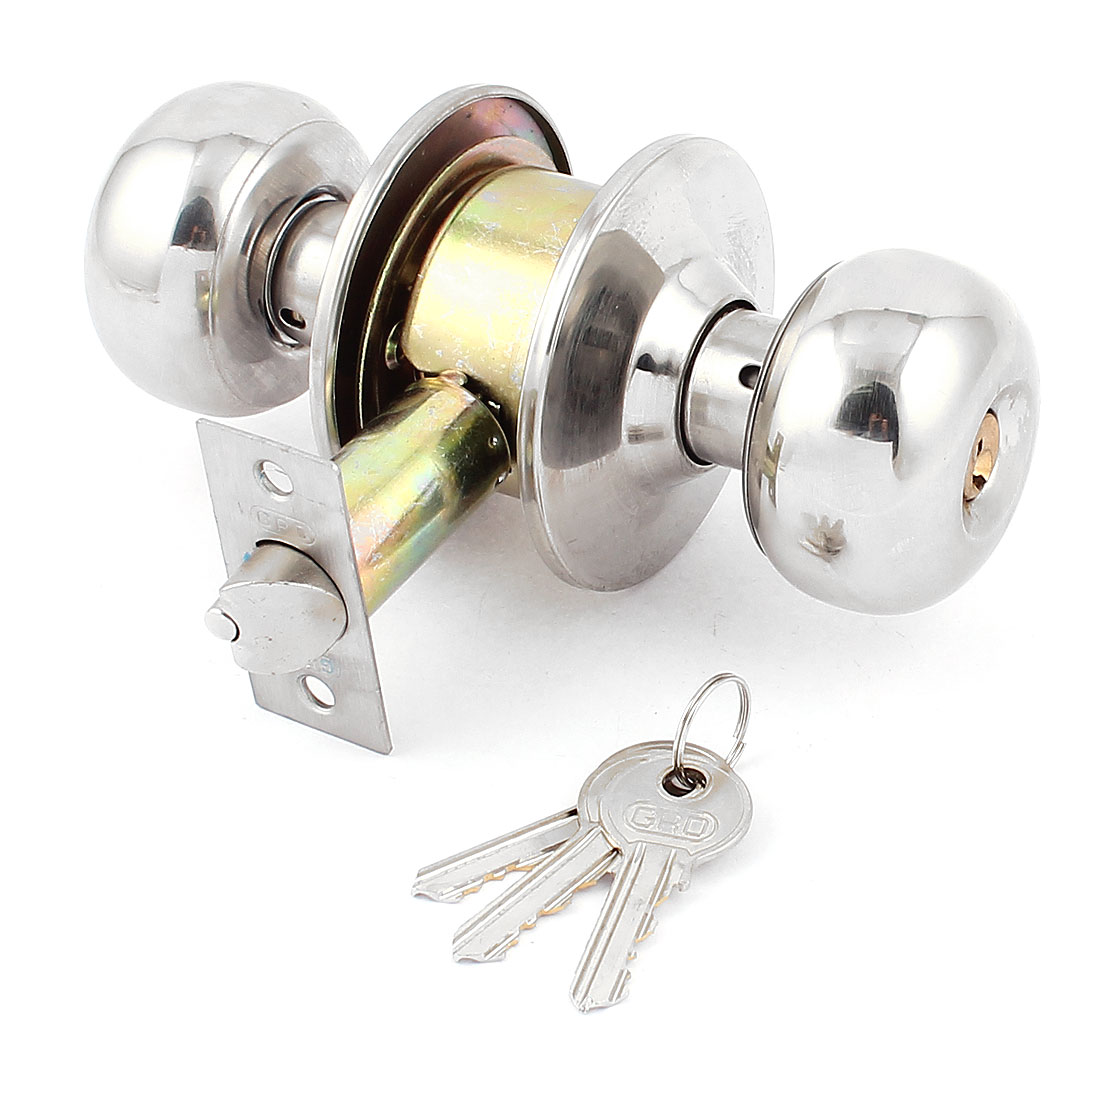 bedroom door lock with key household bedroom bathroom metal door locks with push 18145